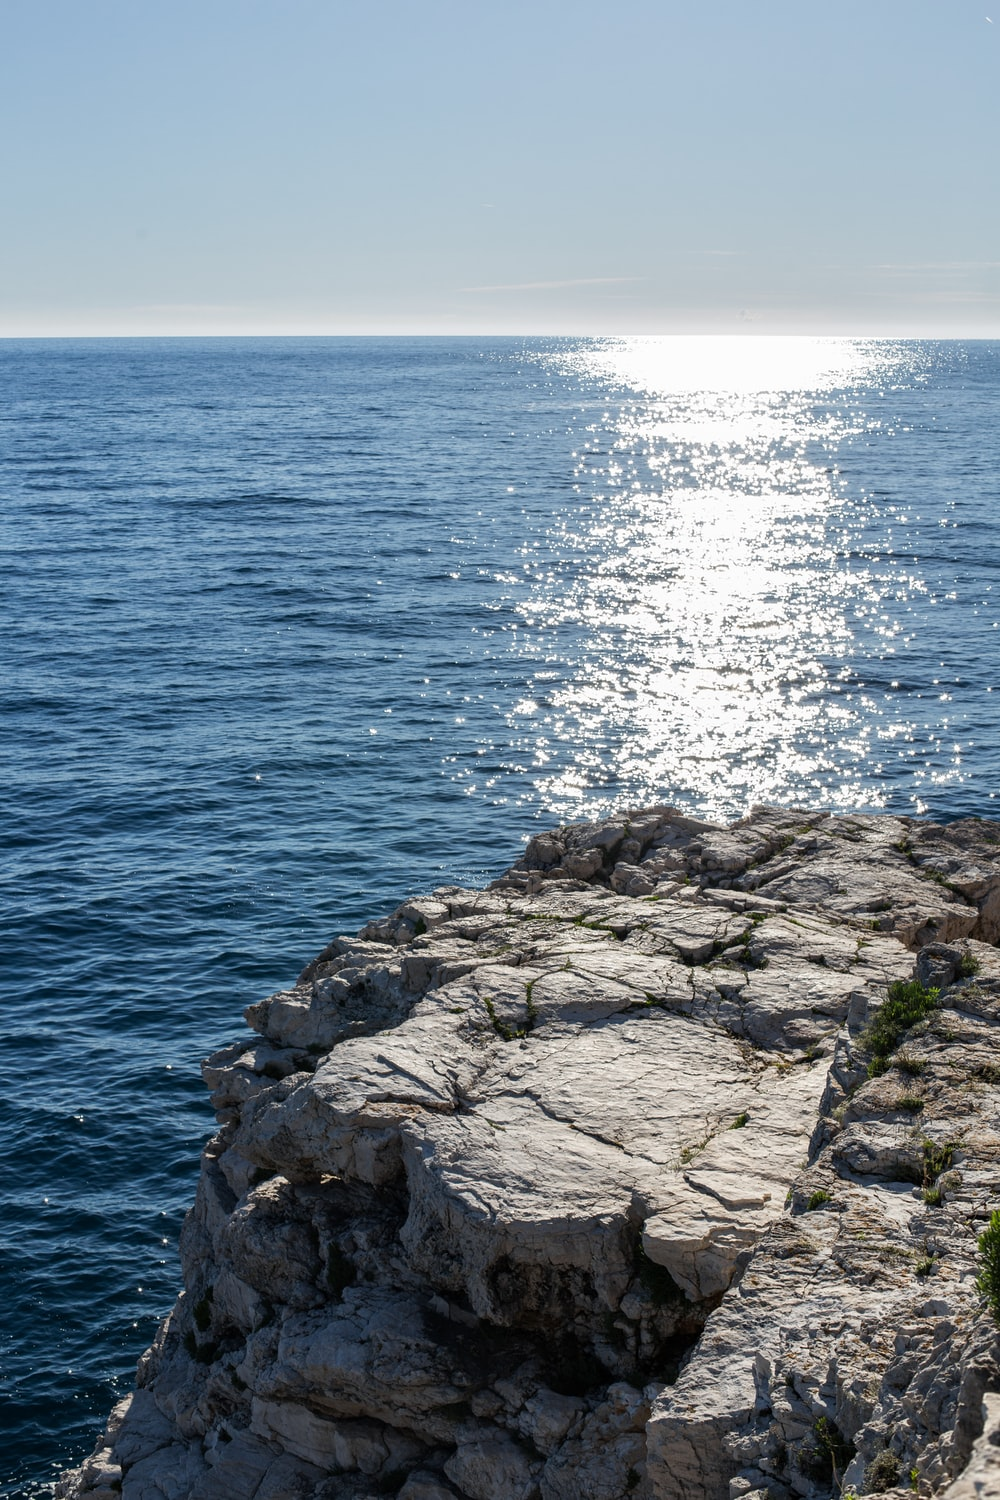 rocky shore with sea waves crashing on rocks during daytime